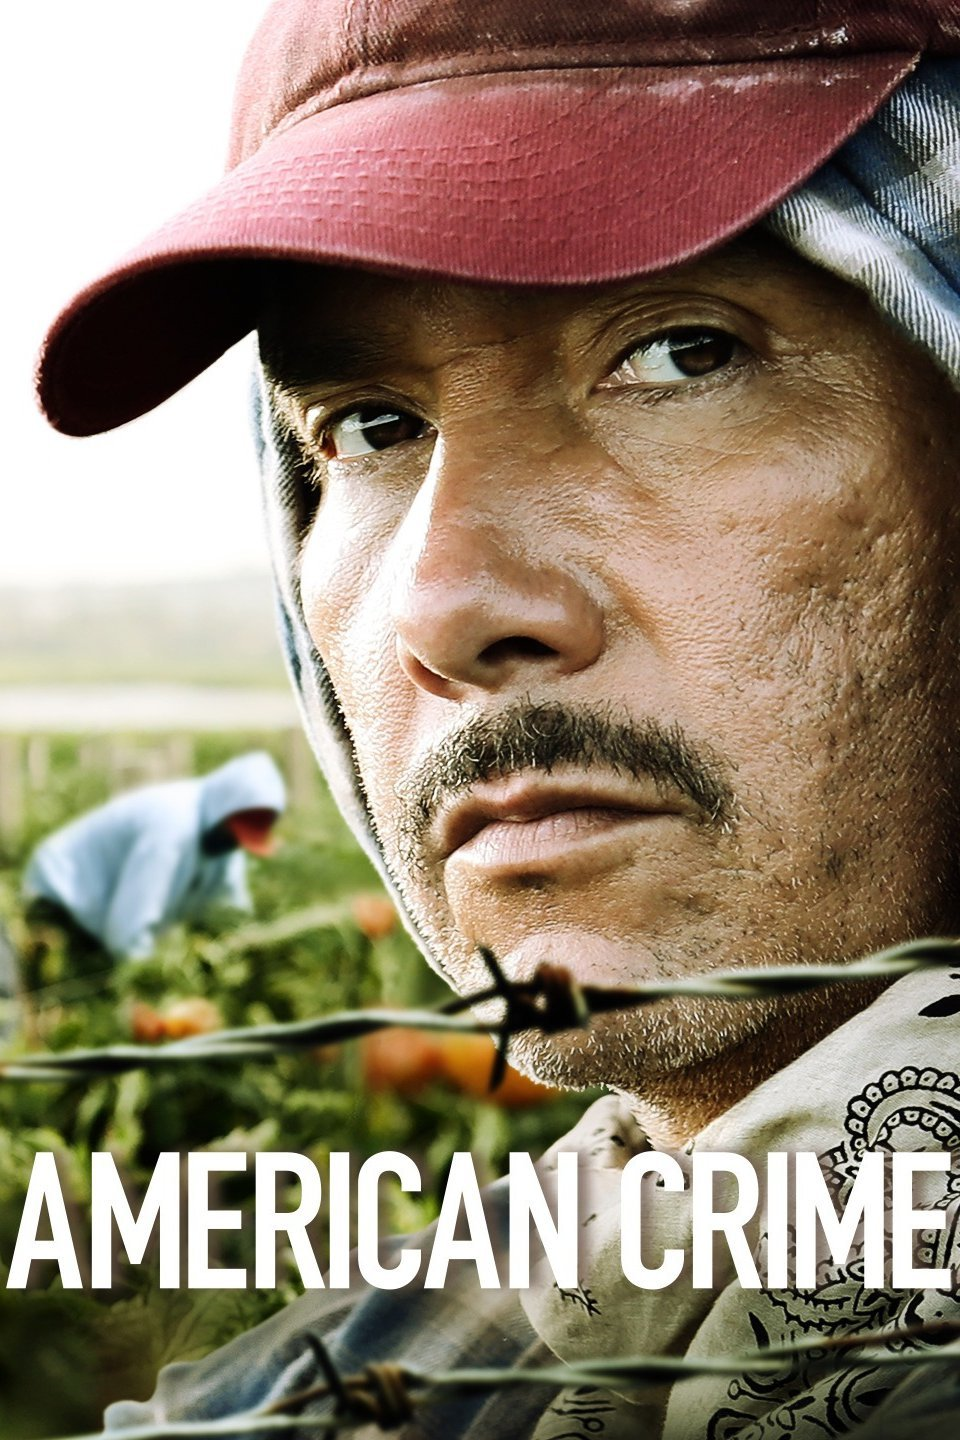 American Crime Season 1-3 Complete Download 480p